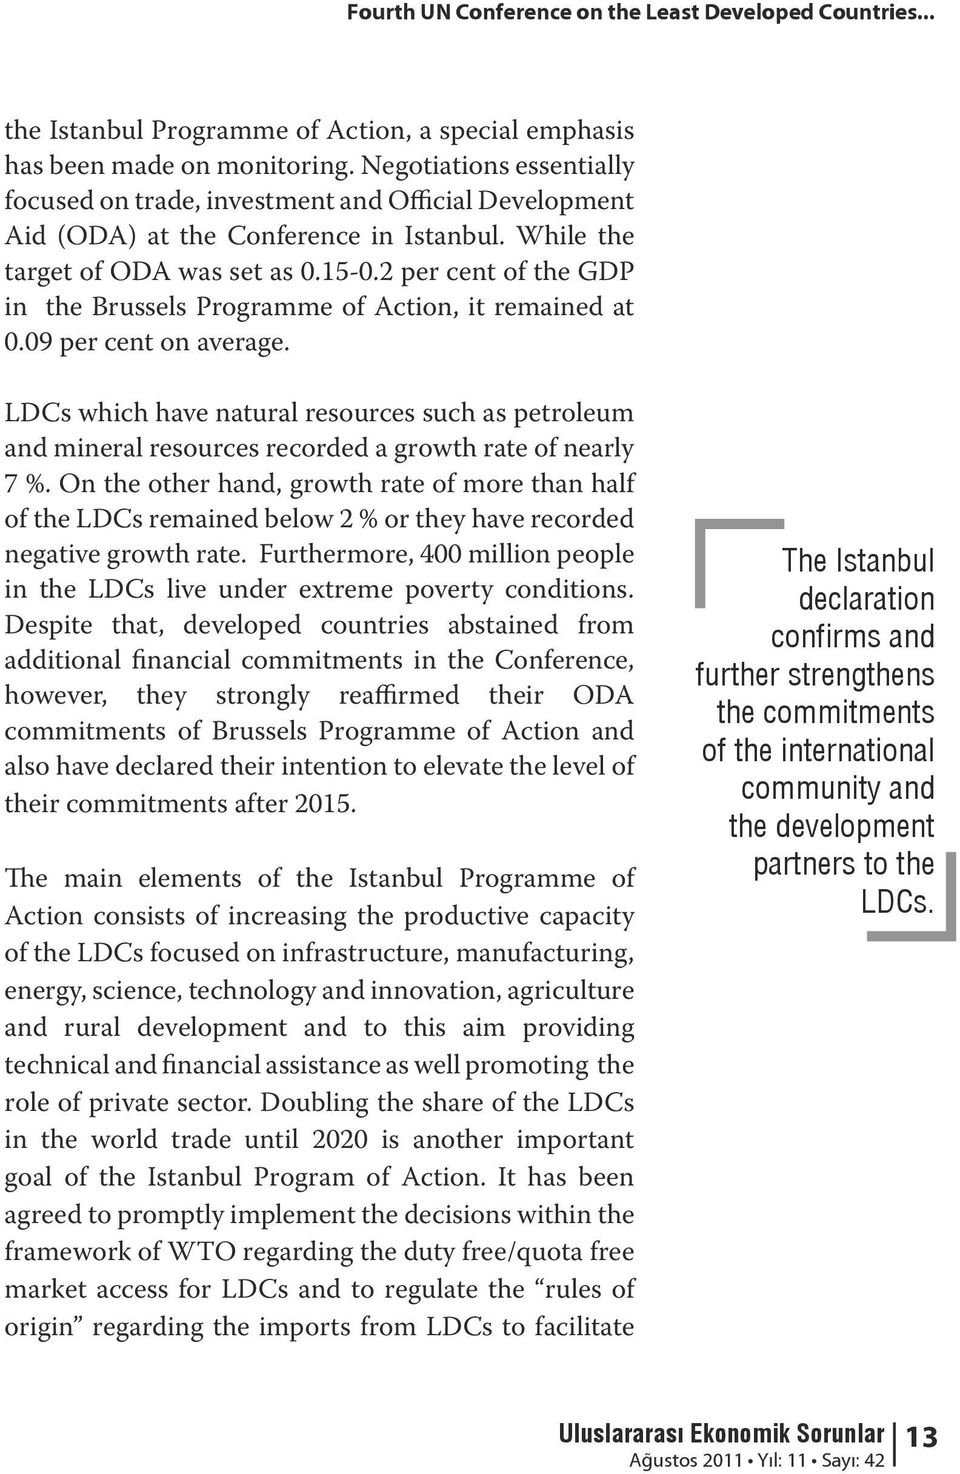 2 per cent of the GDP in the Brussels Programme of Action, it remained at 0.09 per cent on average.